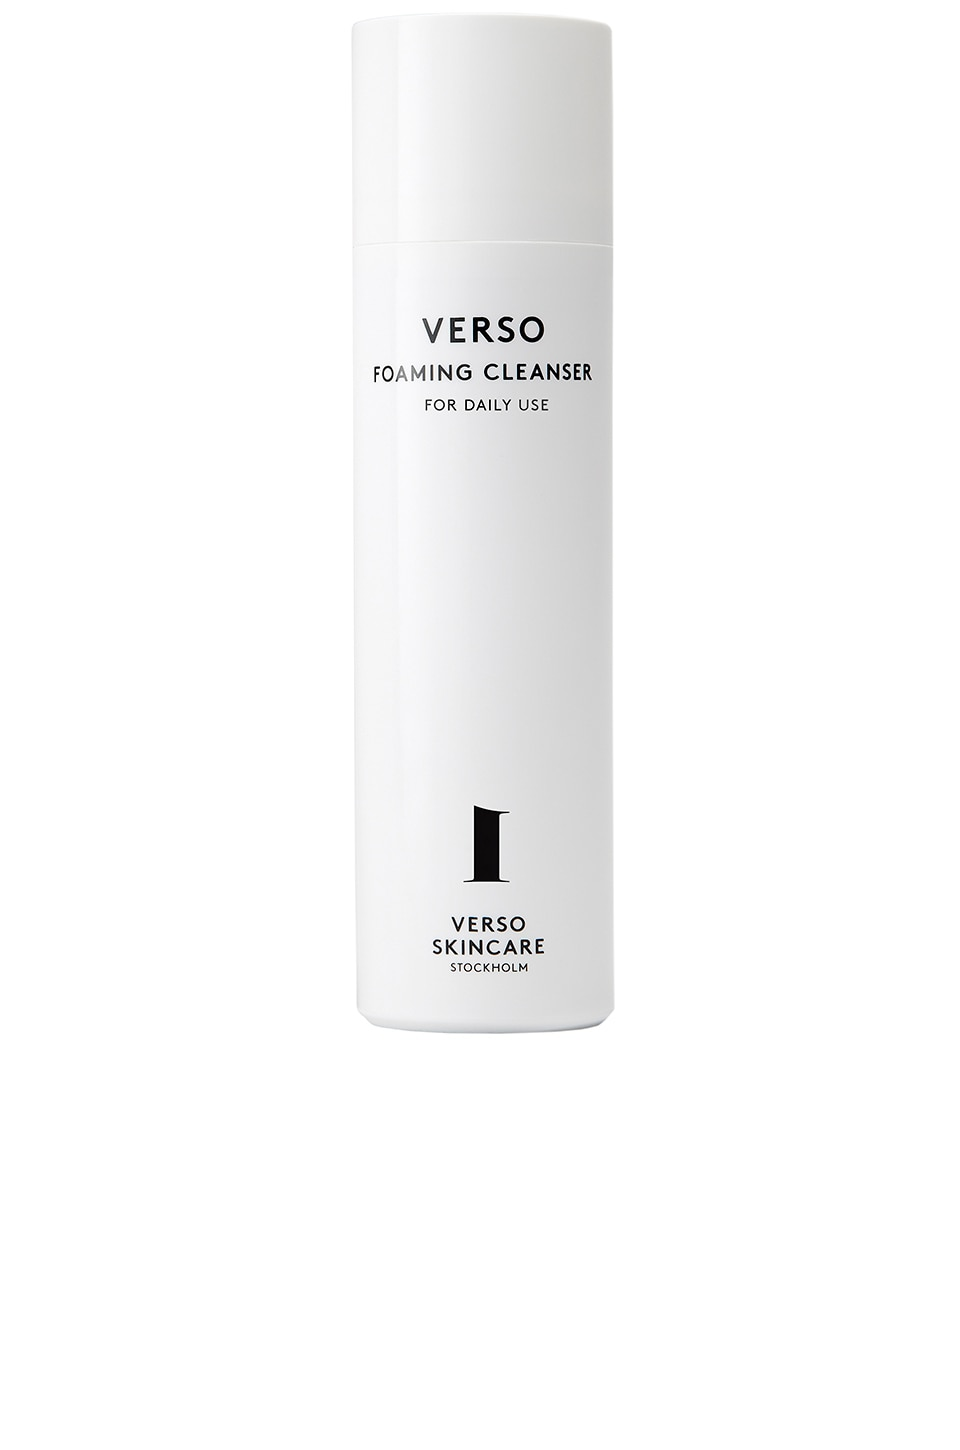 VERSO SKINCARE Foaming Cleanser